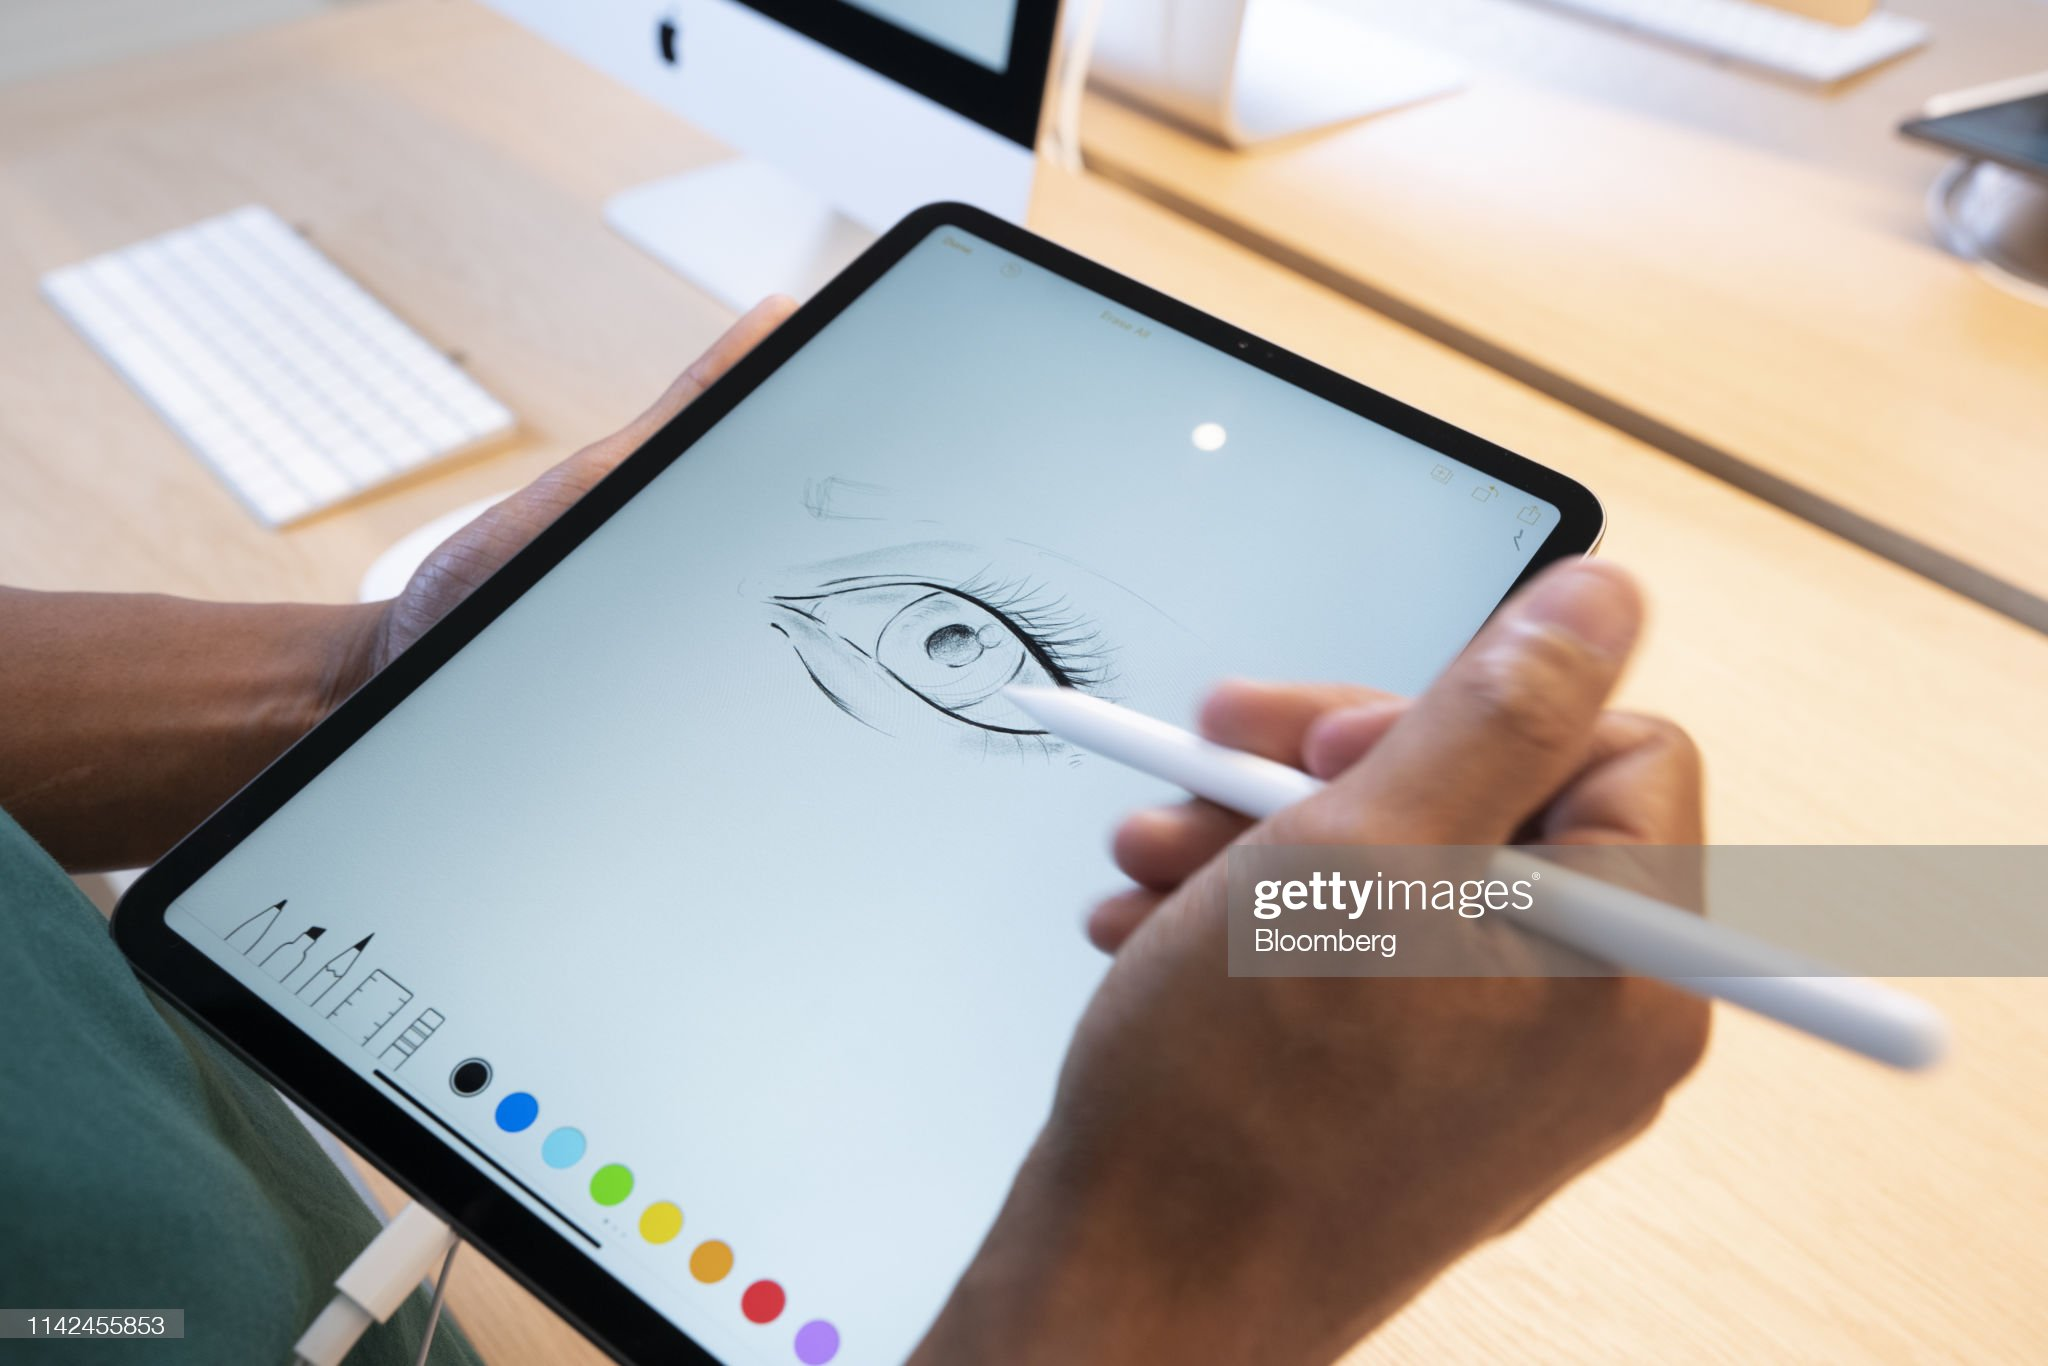 Is Paperlike bad for your iPad?